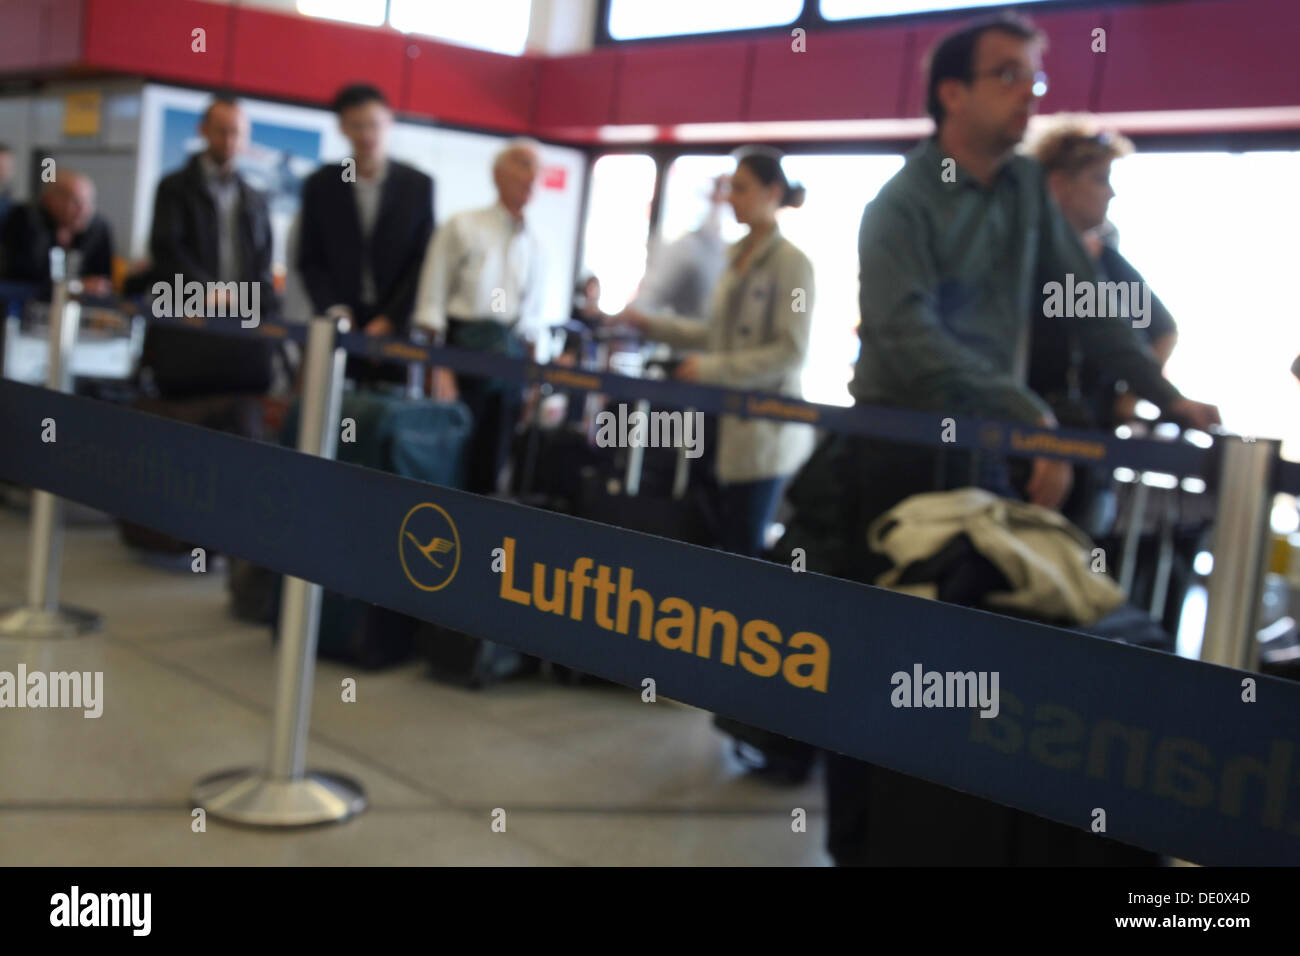 Passengers waiting at the airport, delays and canceled flights due to the strike of the Lufthansa flight attendants - Stock Image